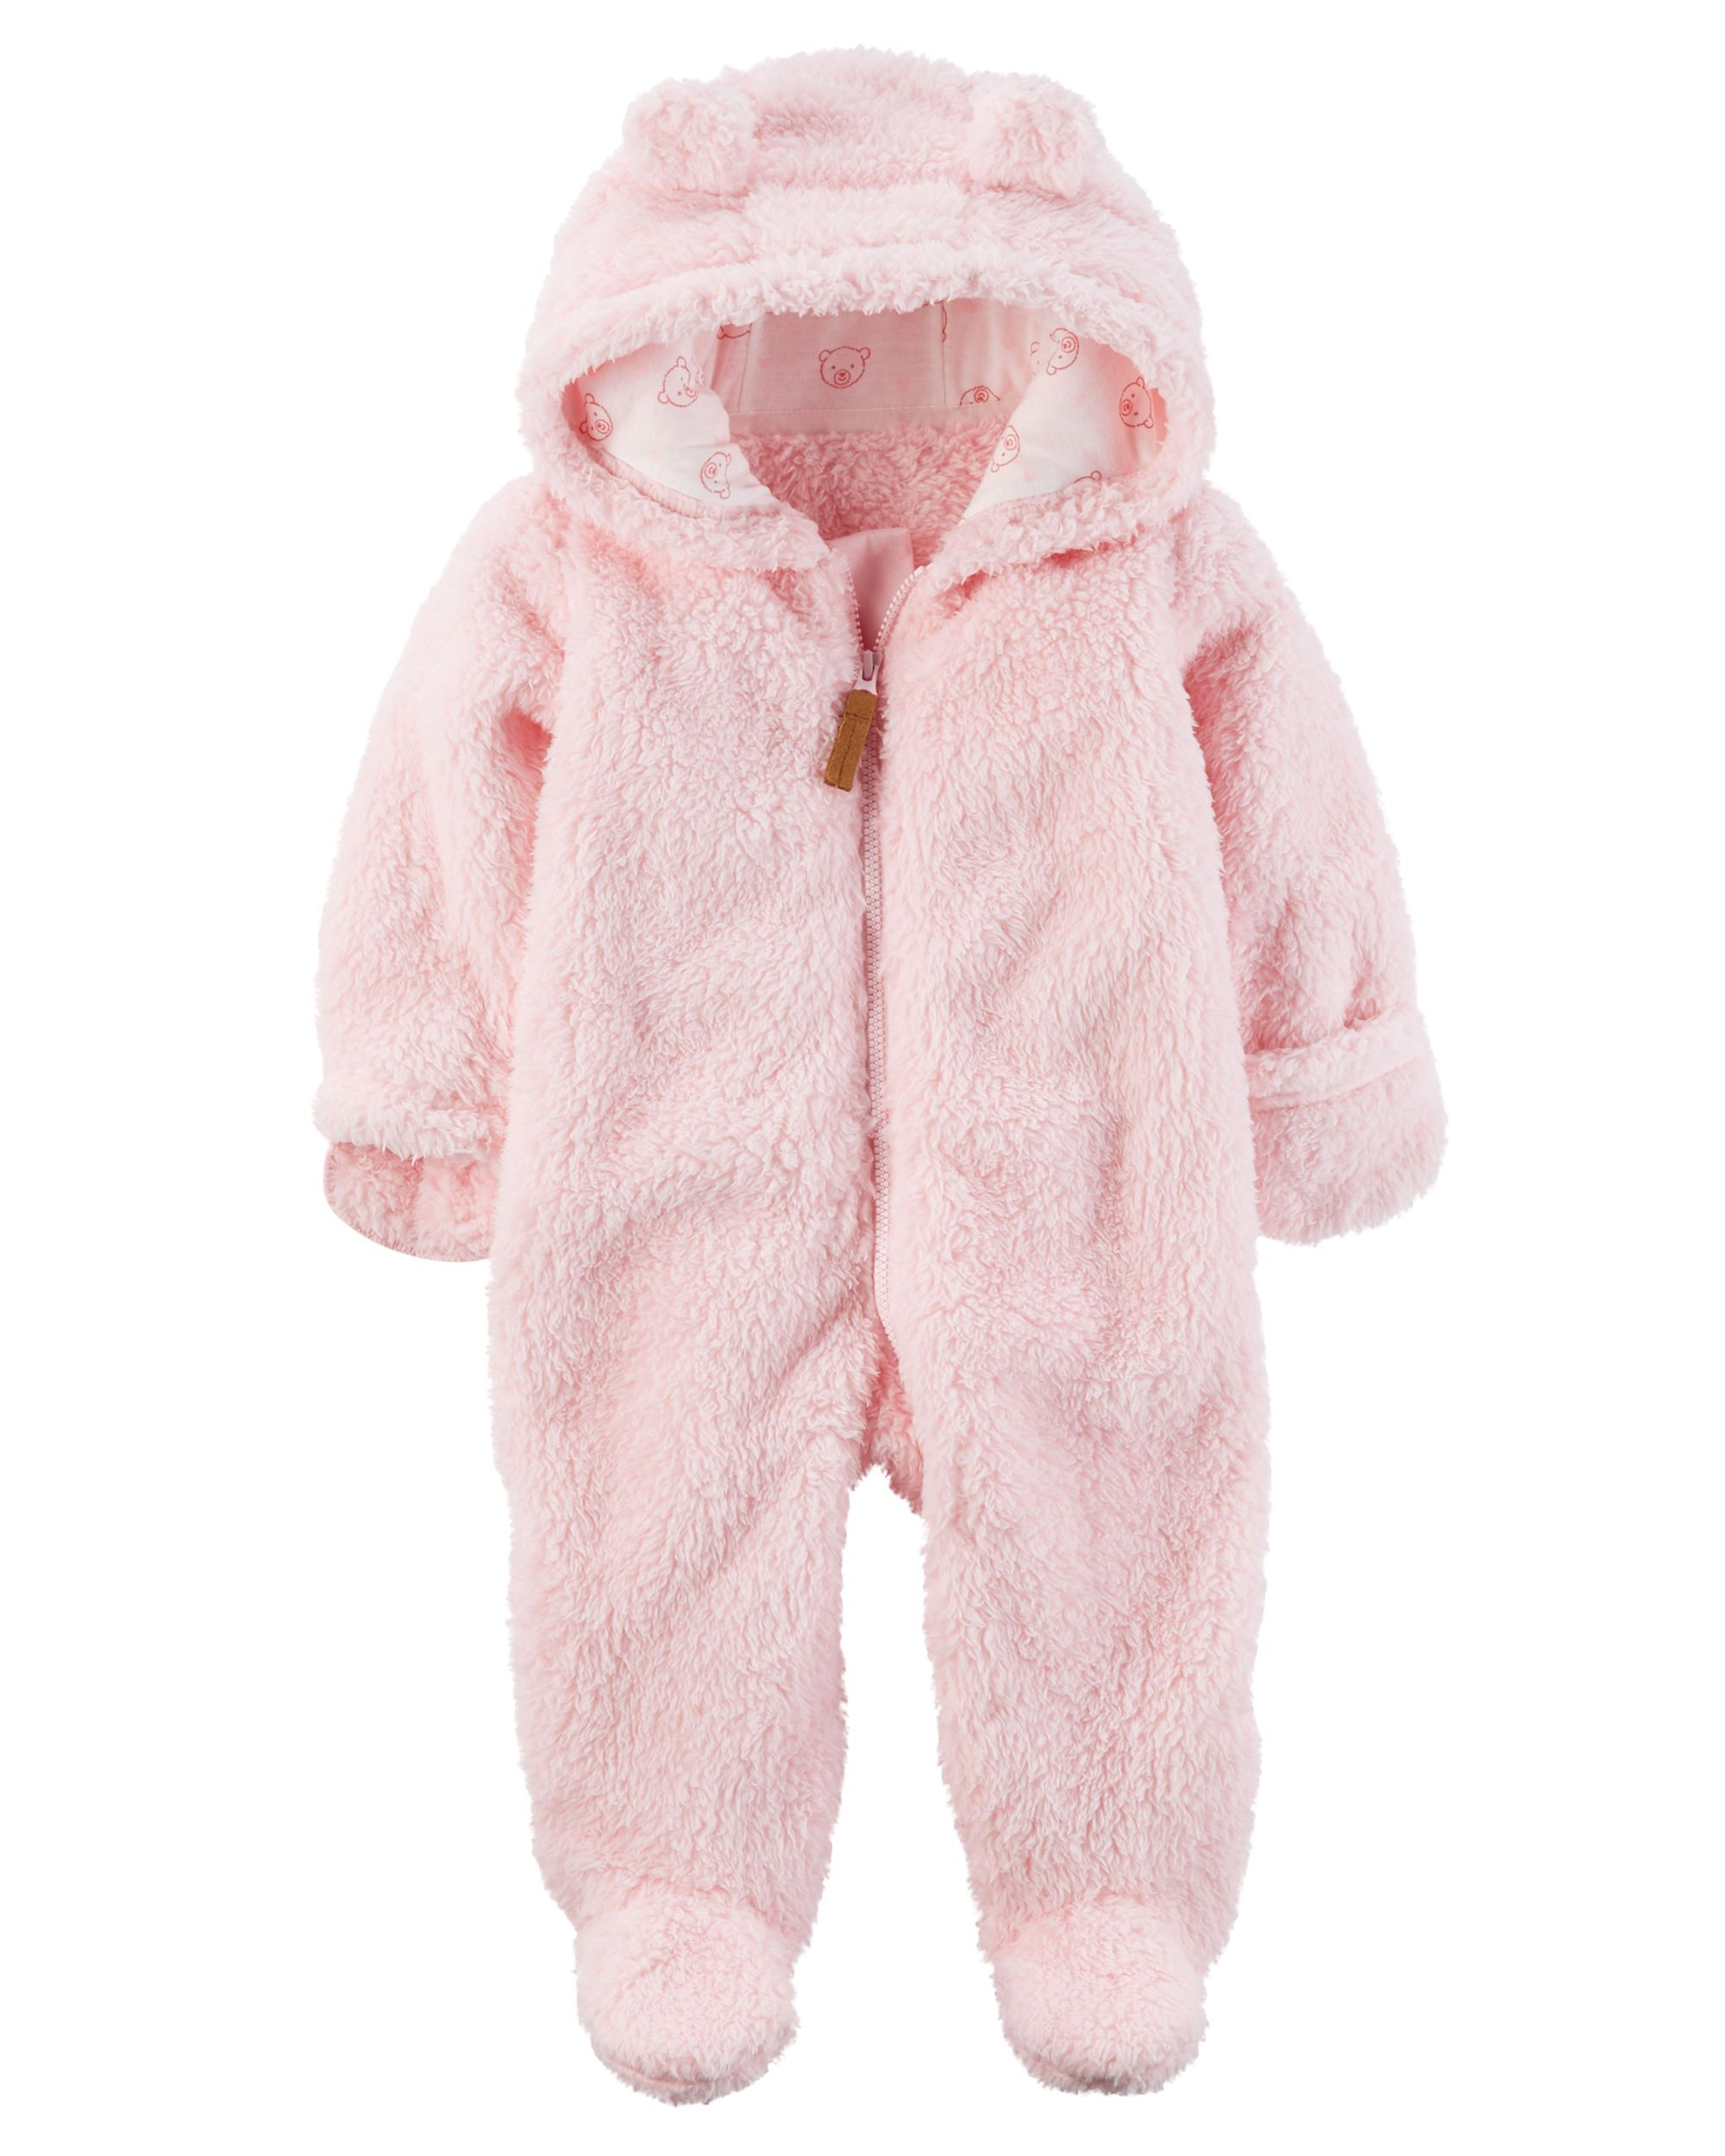 945a206e2 Hooded Sherpa Bunting